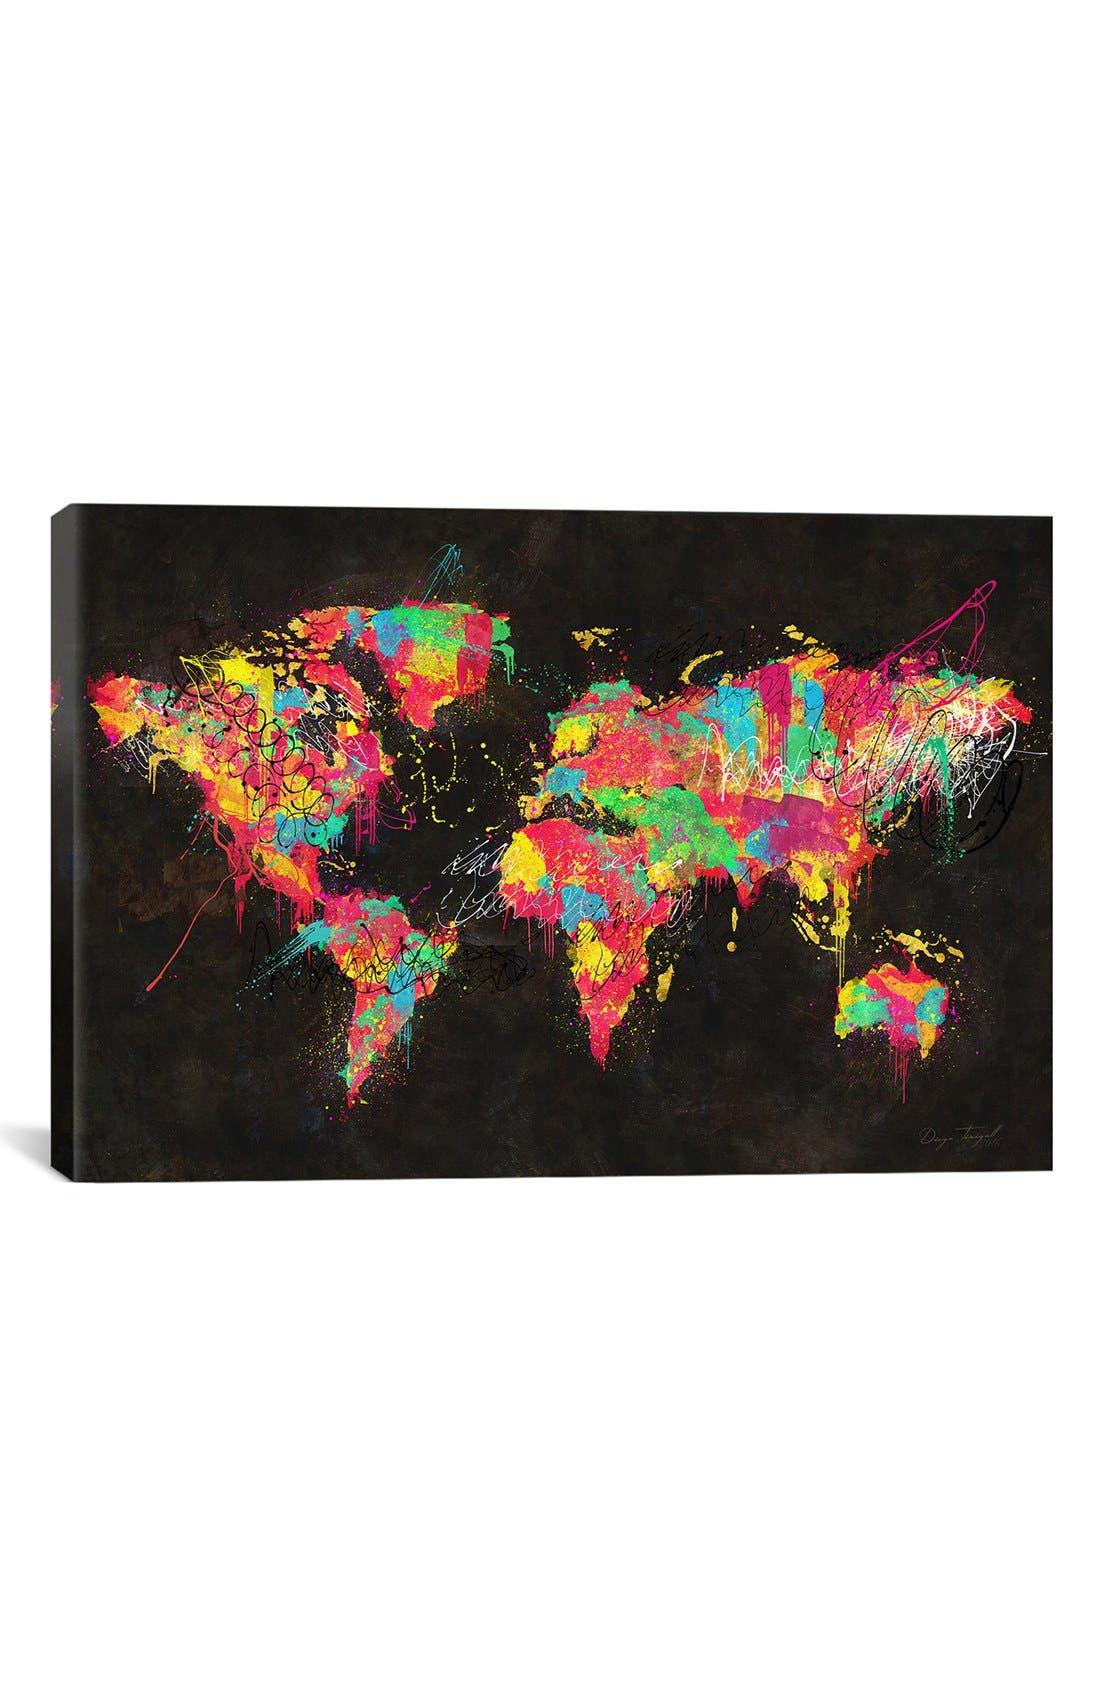 'Continents' Giclée Print Canvas Art,                         Main,                         color, Black